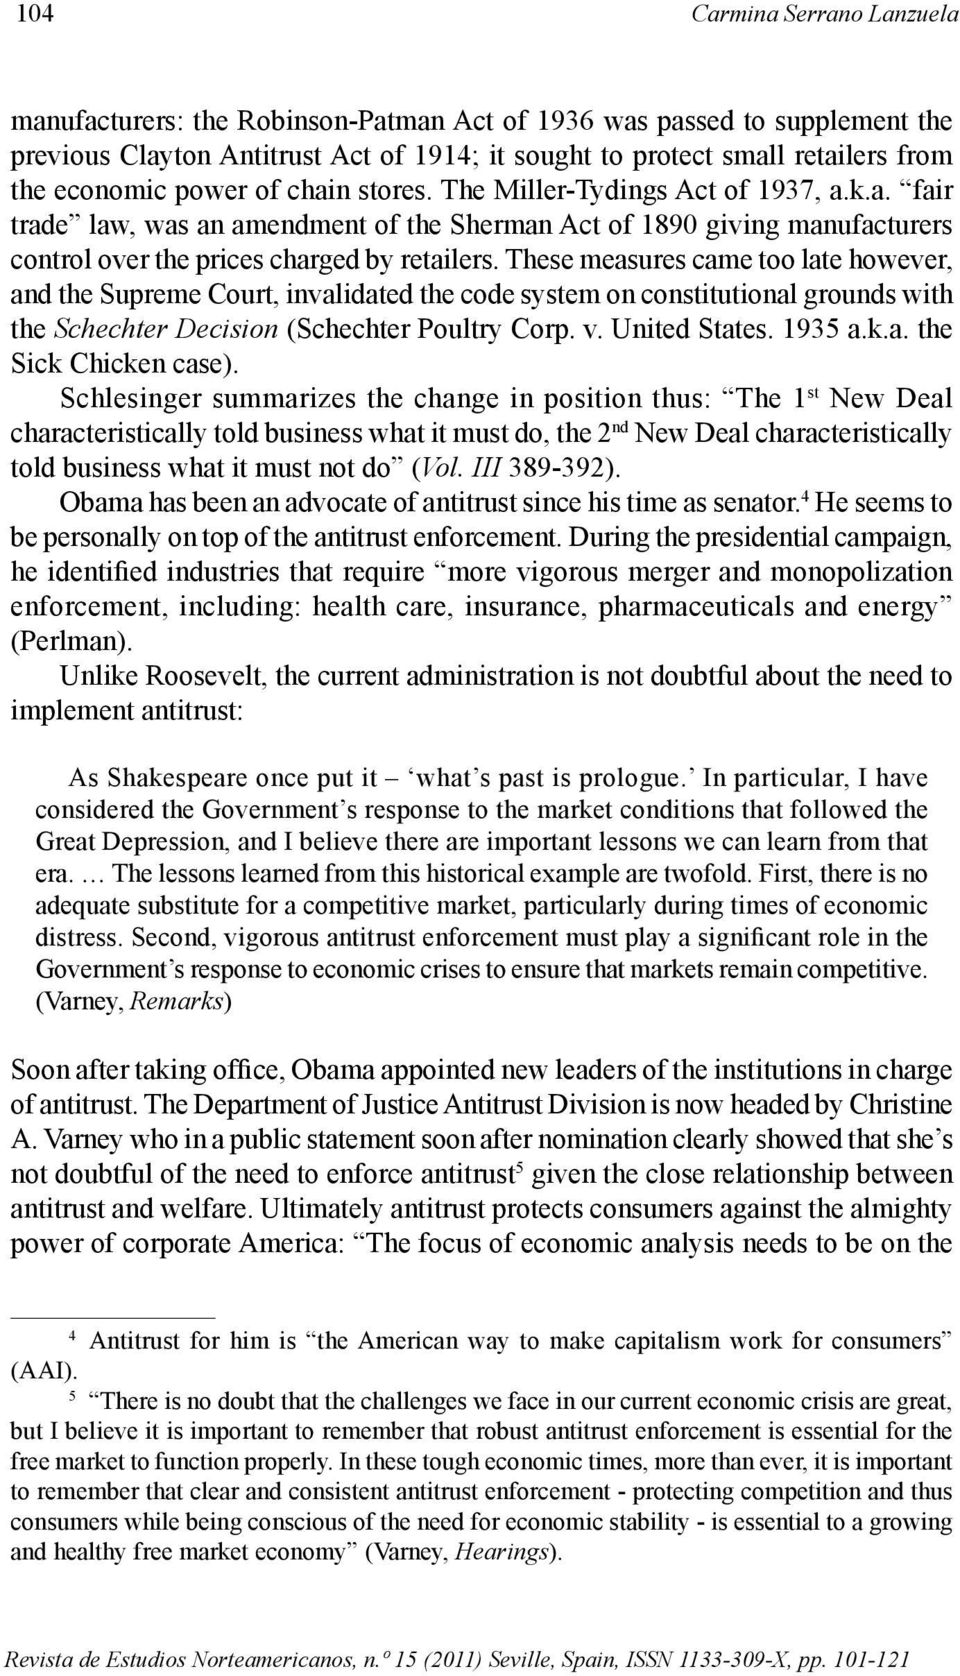 These measures came too late however, and the Supreme Court, invalidated the code system on constitutional grounds with the Schechter Decision (Schechter Poultry Corp. v. United States. 1935 a.k.a. the Sick Chicken case).